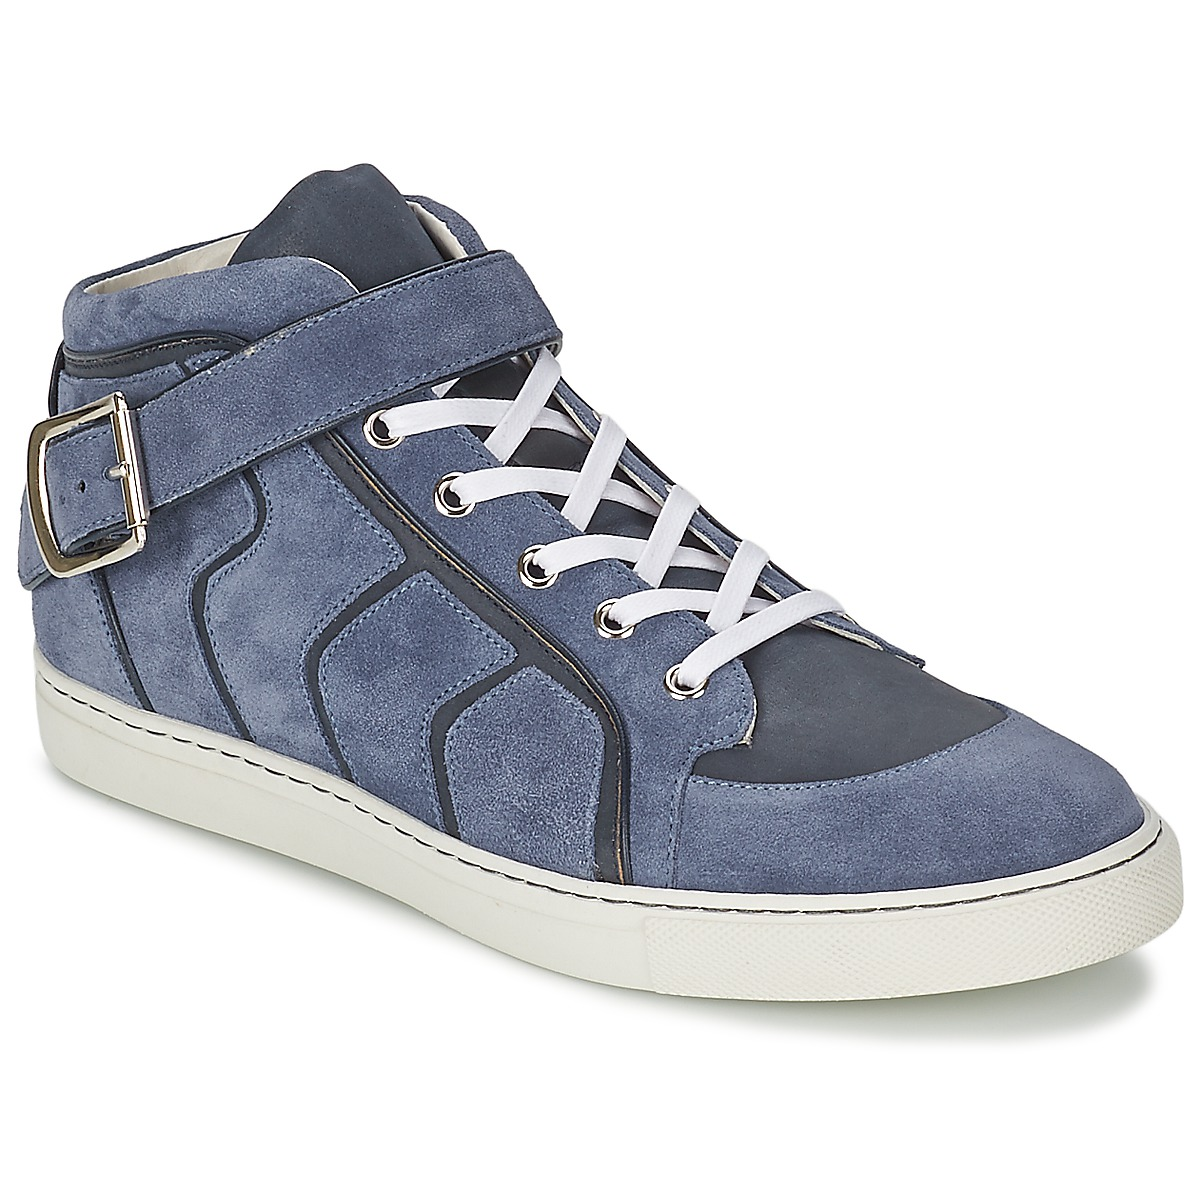 Vivienne Westwood HIGH TRAINER Blau